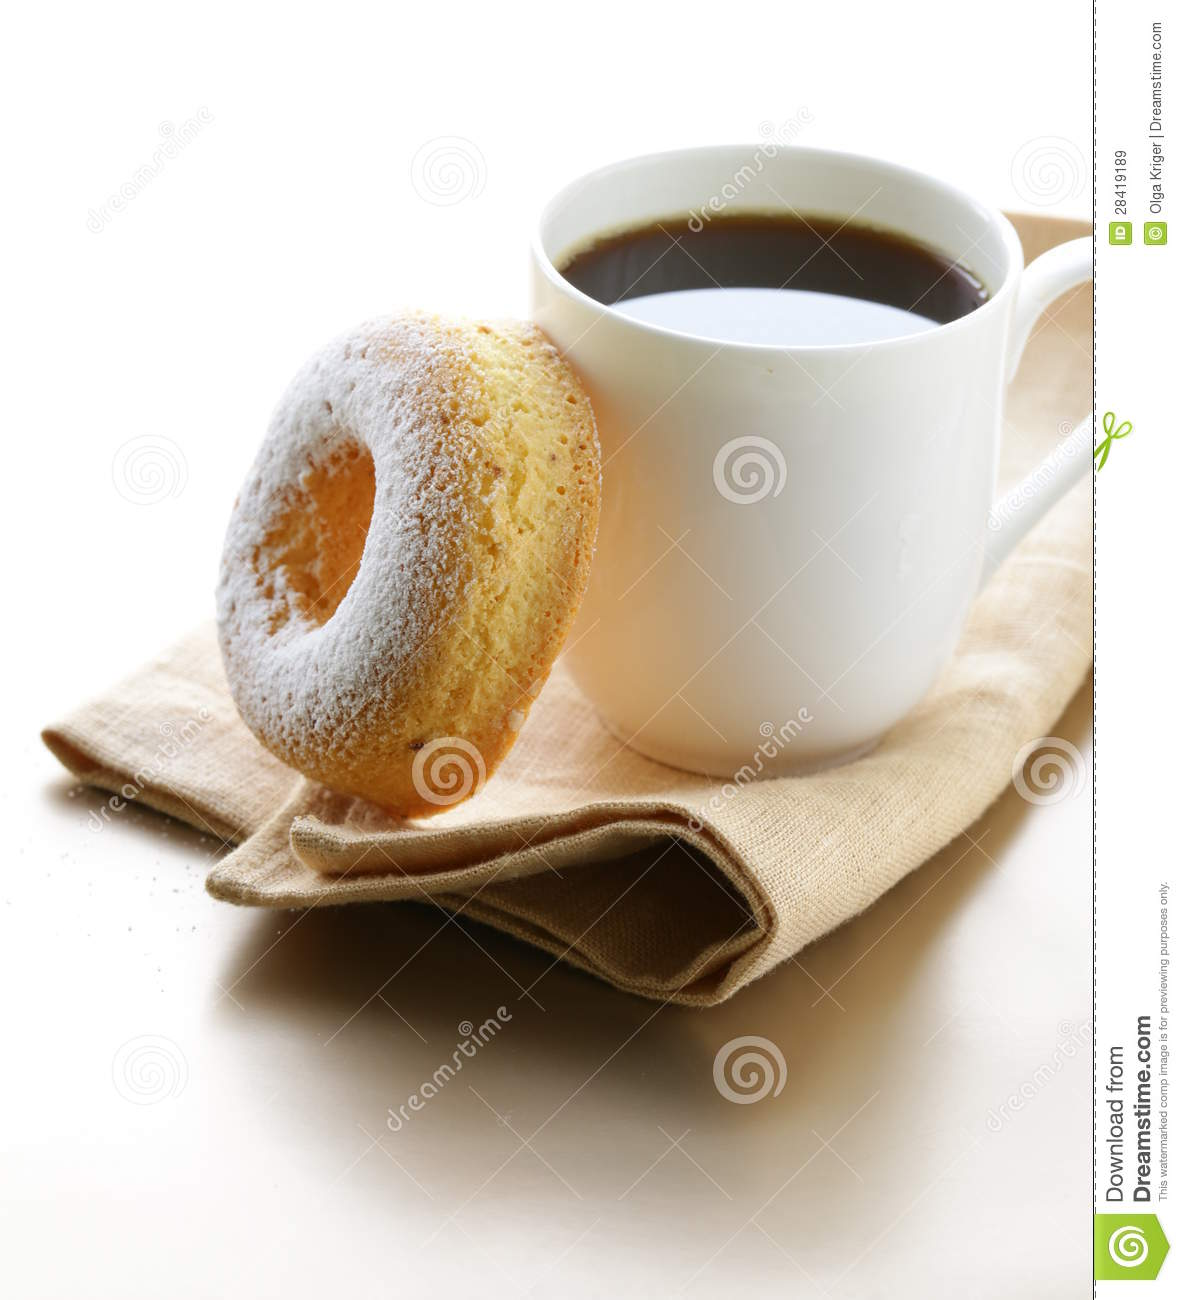 Fresh Donut Sprinkled With Powdered Sugar Royalty Free Stock Images